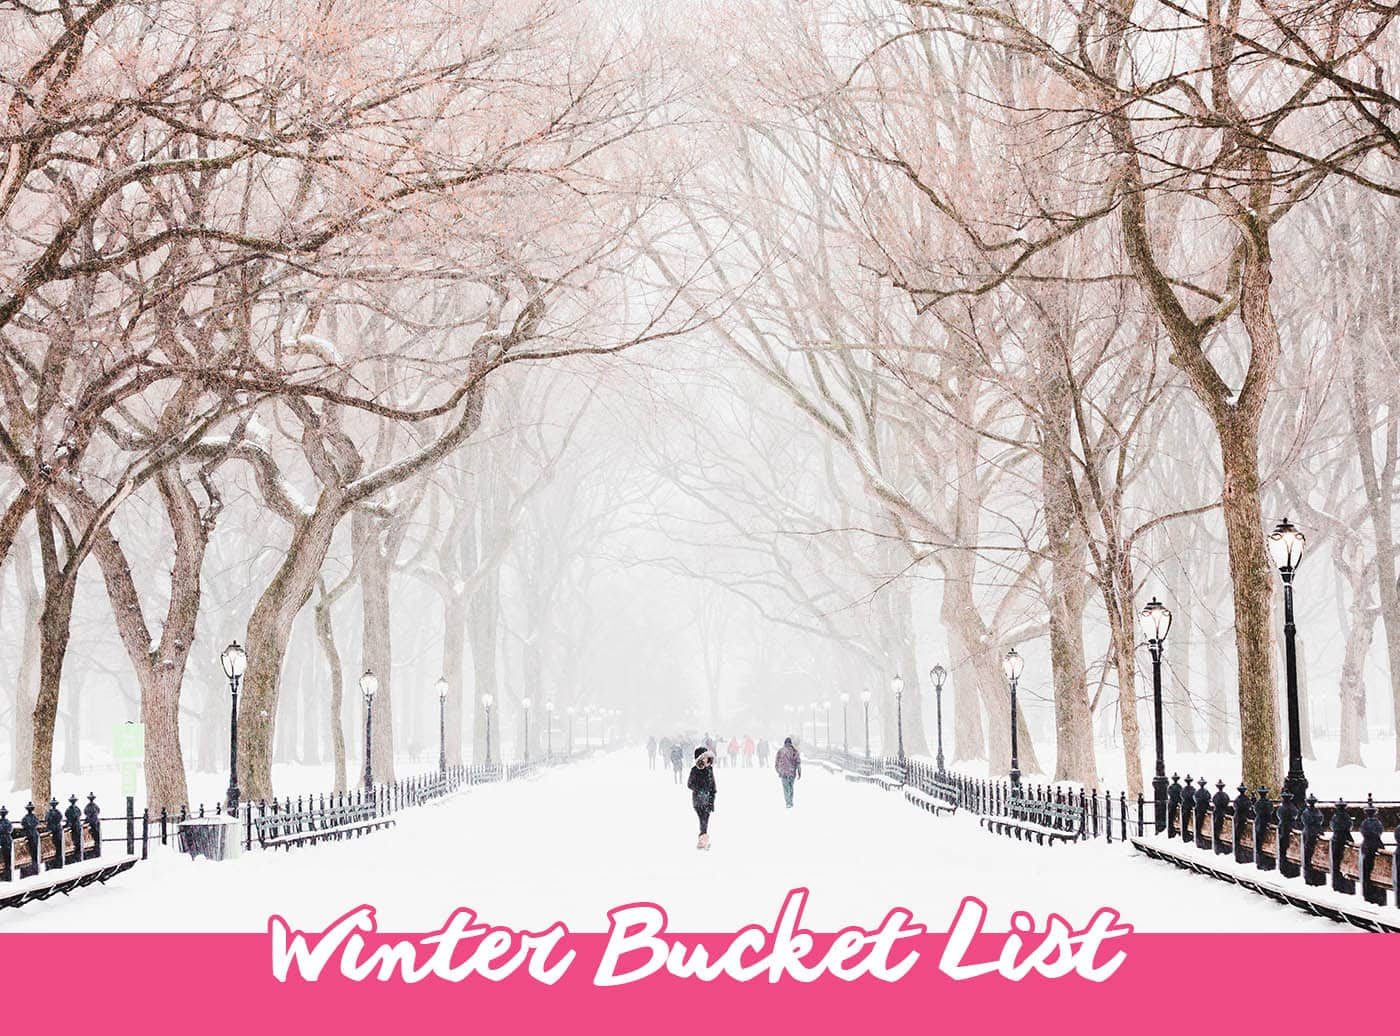 Winter Bucket List - Things to do in Winter | Bucket List Inspiration & Ideas